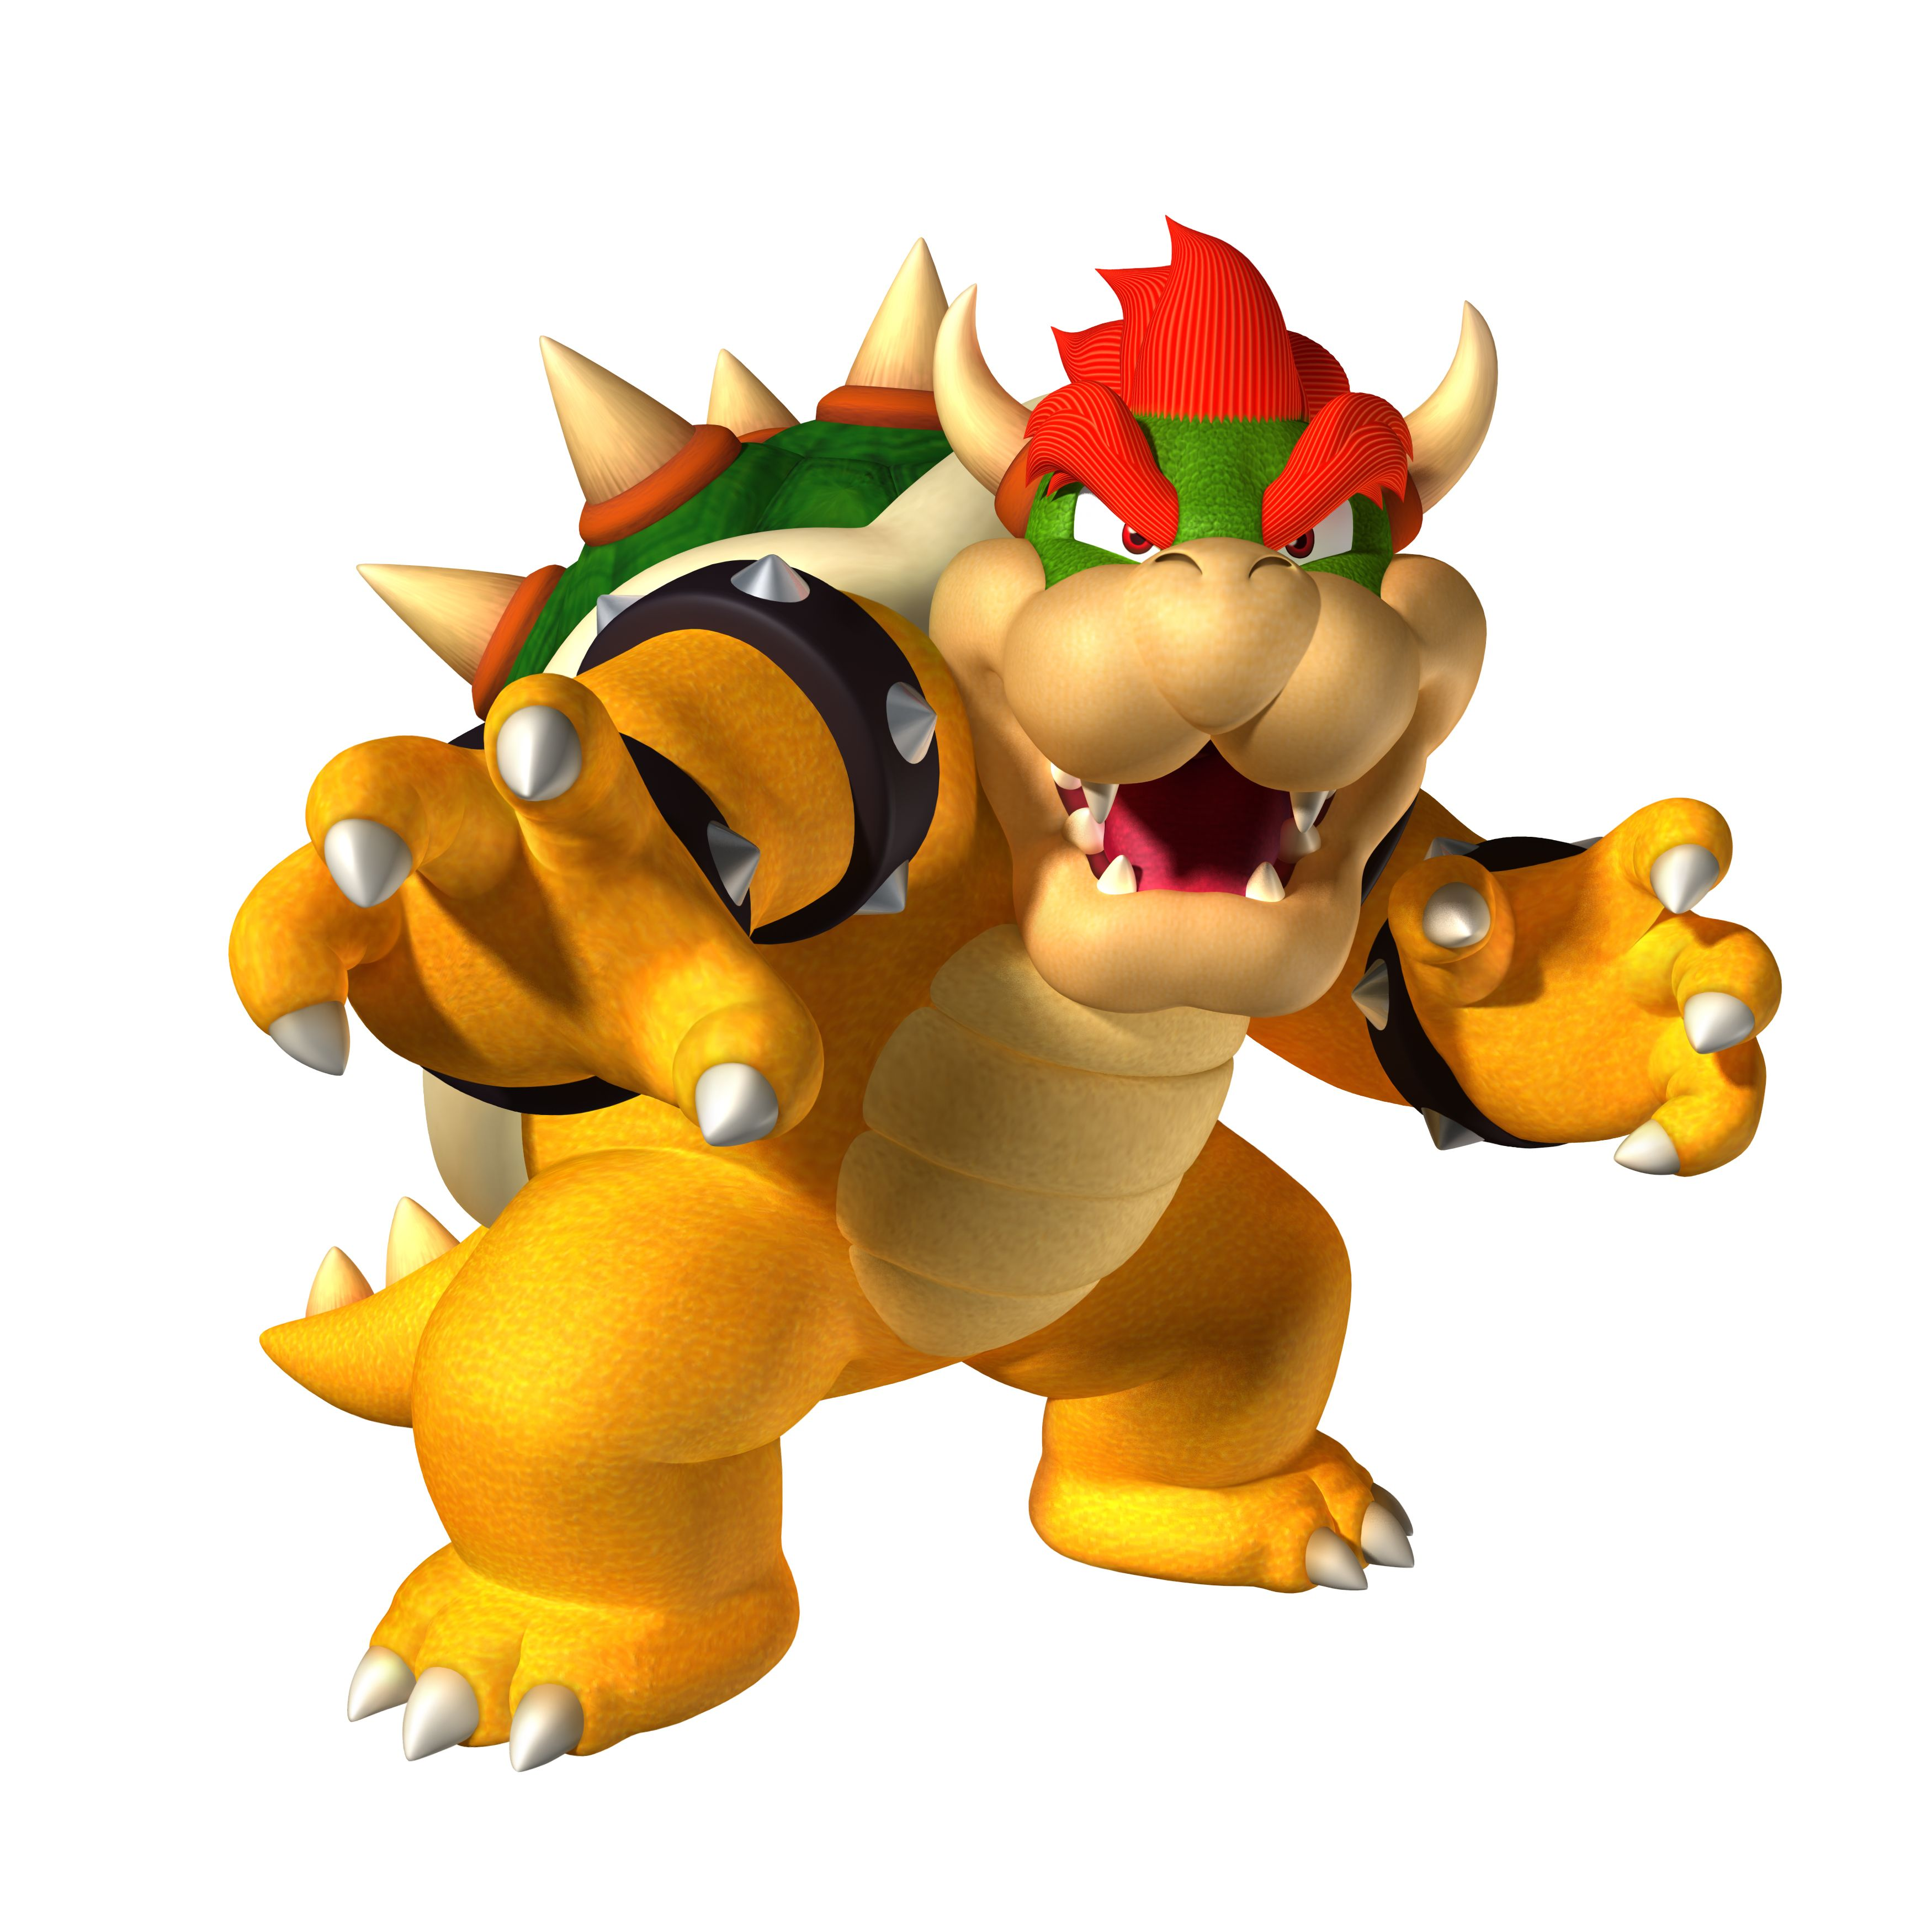 Bowseryour the bad guy kiddnaping peach its your fault